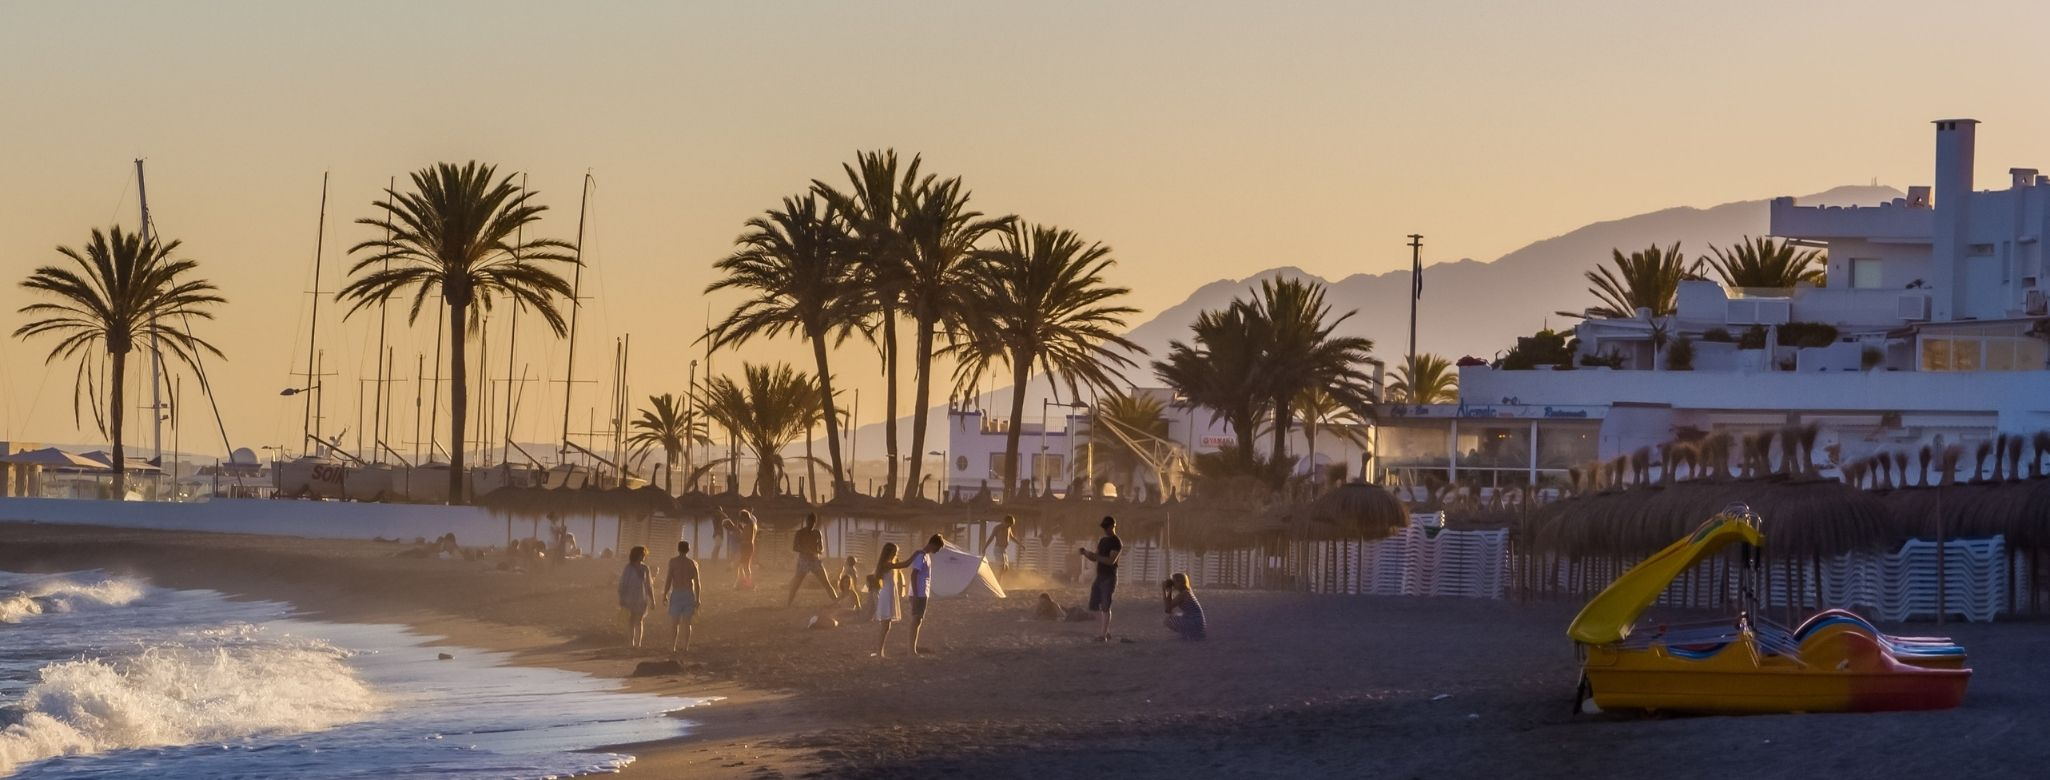 people playing on the beach of Marbella with the palms and sunset on the background